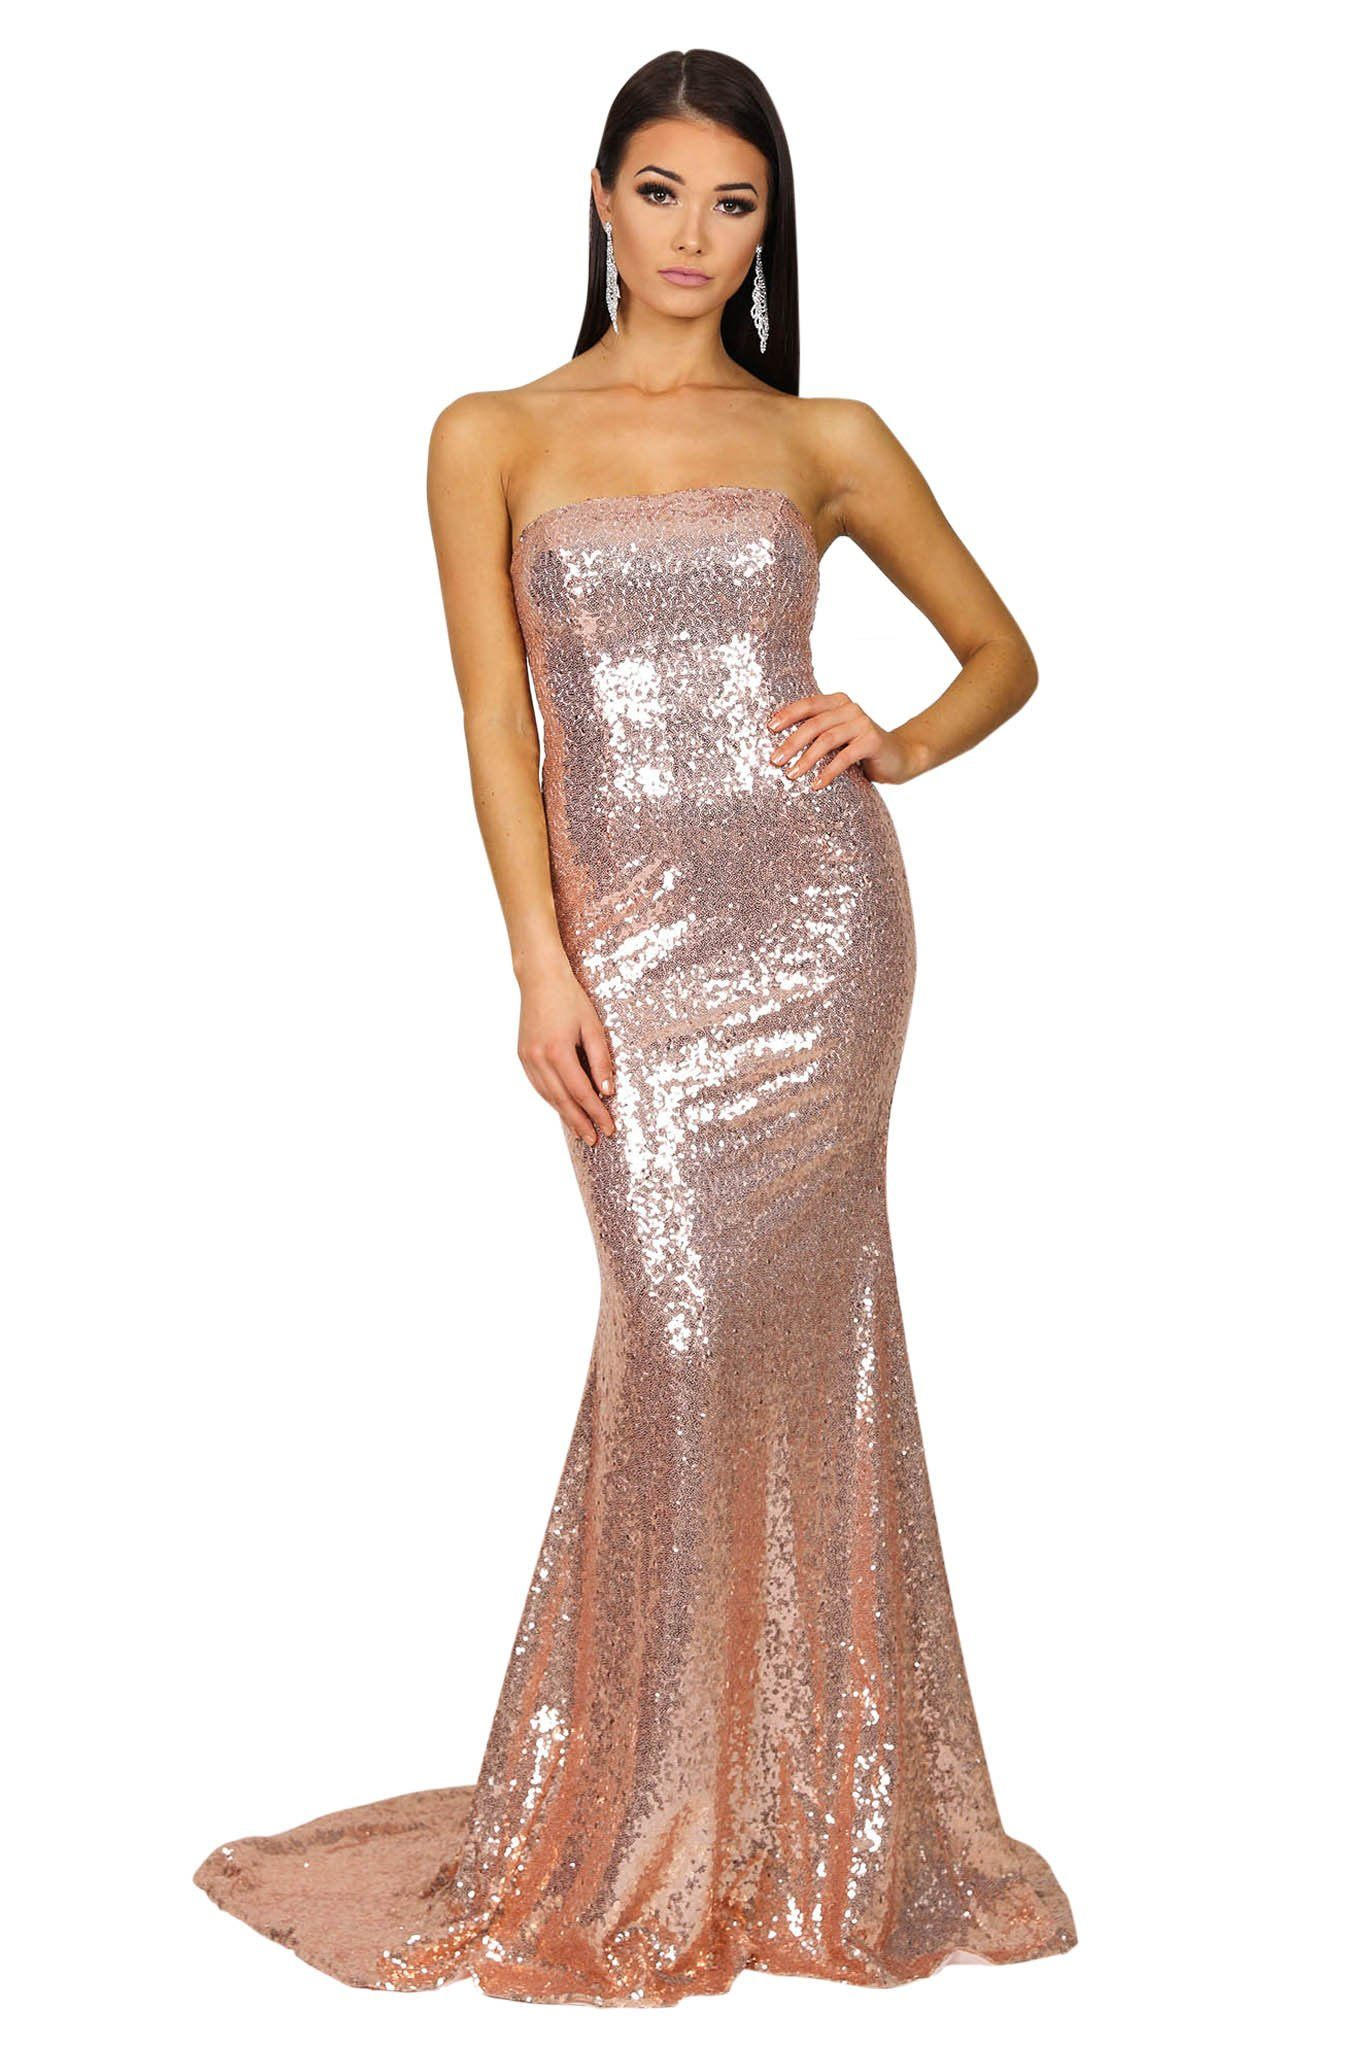 Rose Gold sequinned sleeveless form-fitting formal evening long gown with strapless straight neckline design, trumpet silhouette and long train